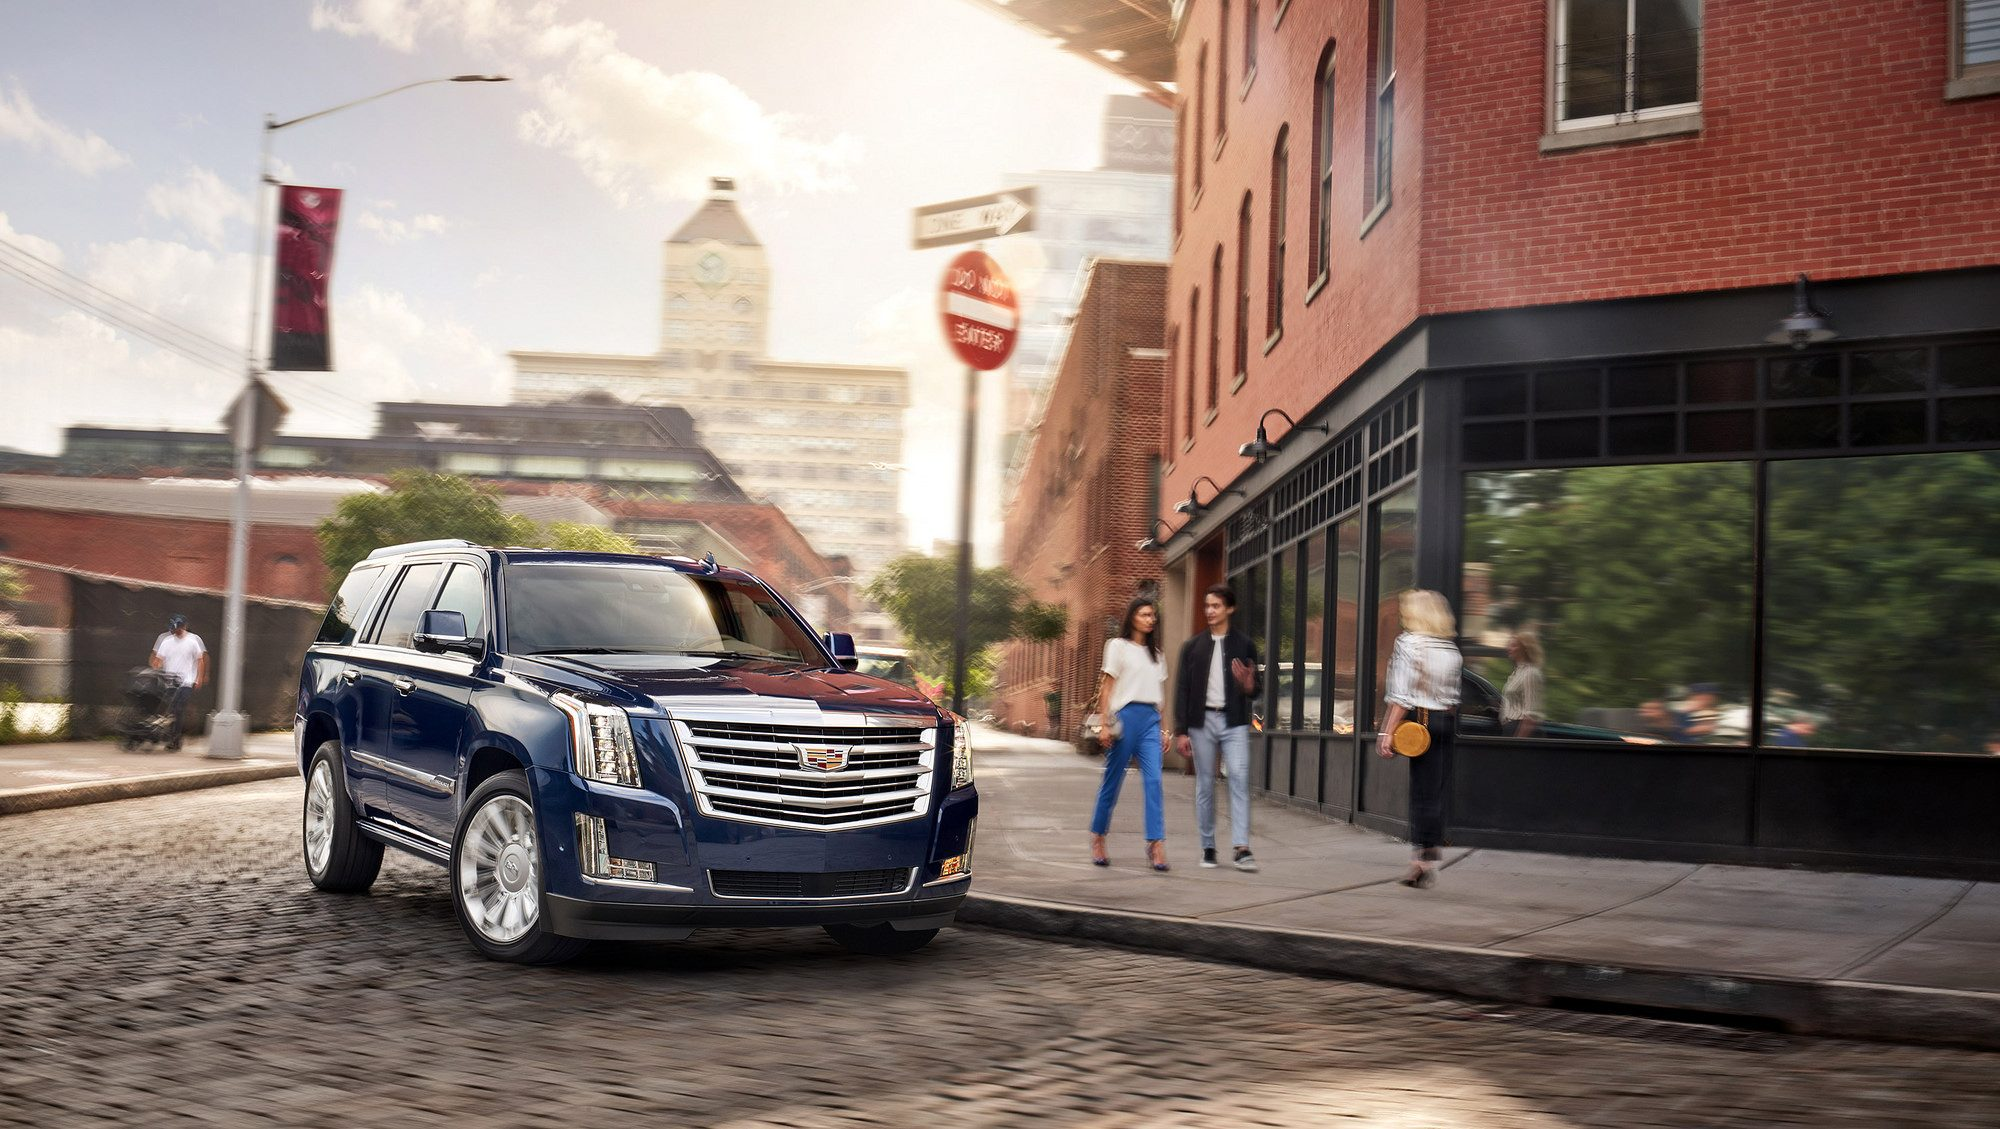 . New Cadillac SUVs are on the way, and, given the automaker's extensive history of bar-raising vehicles and innovations, they could very well be the best yet.